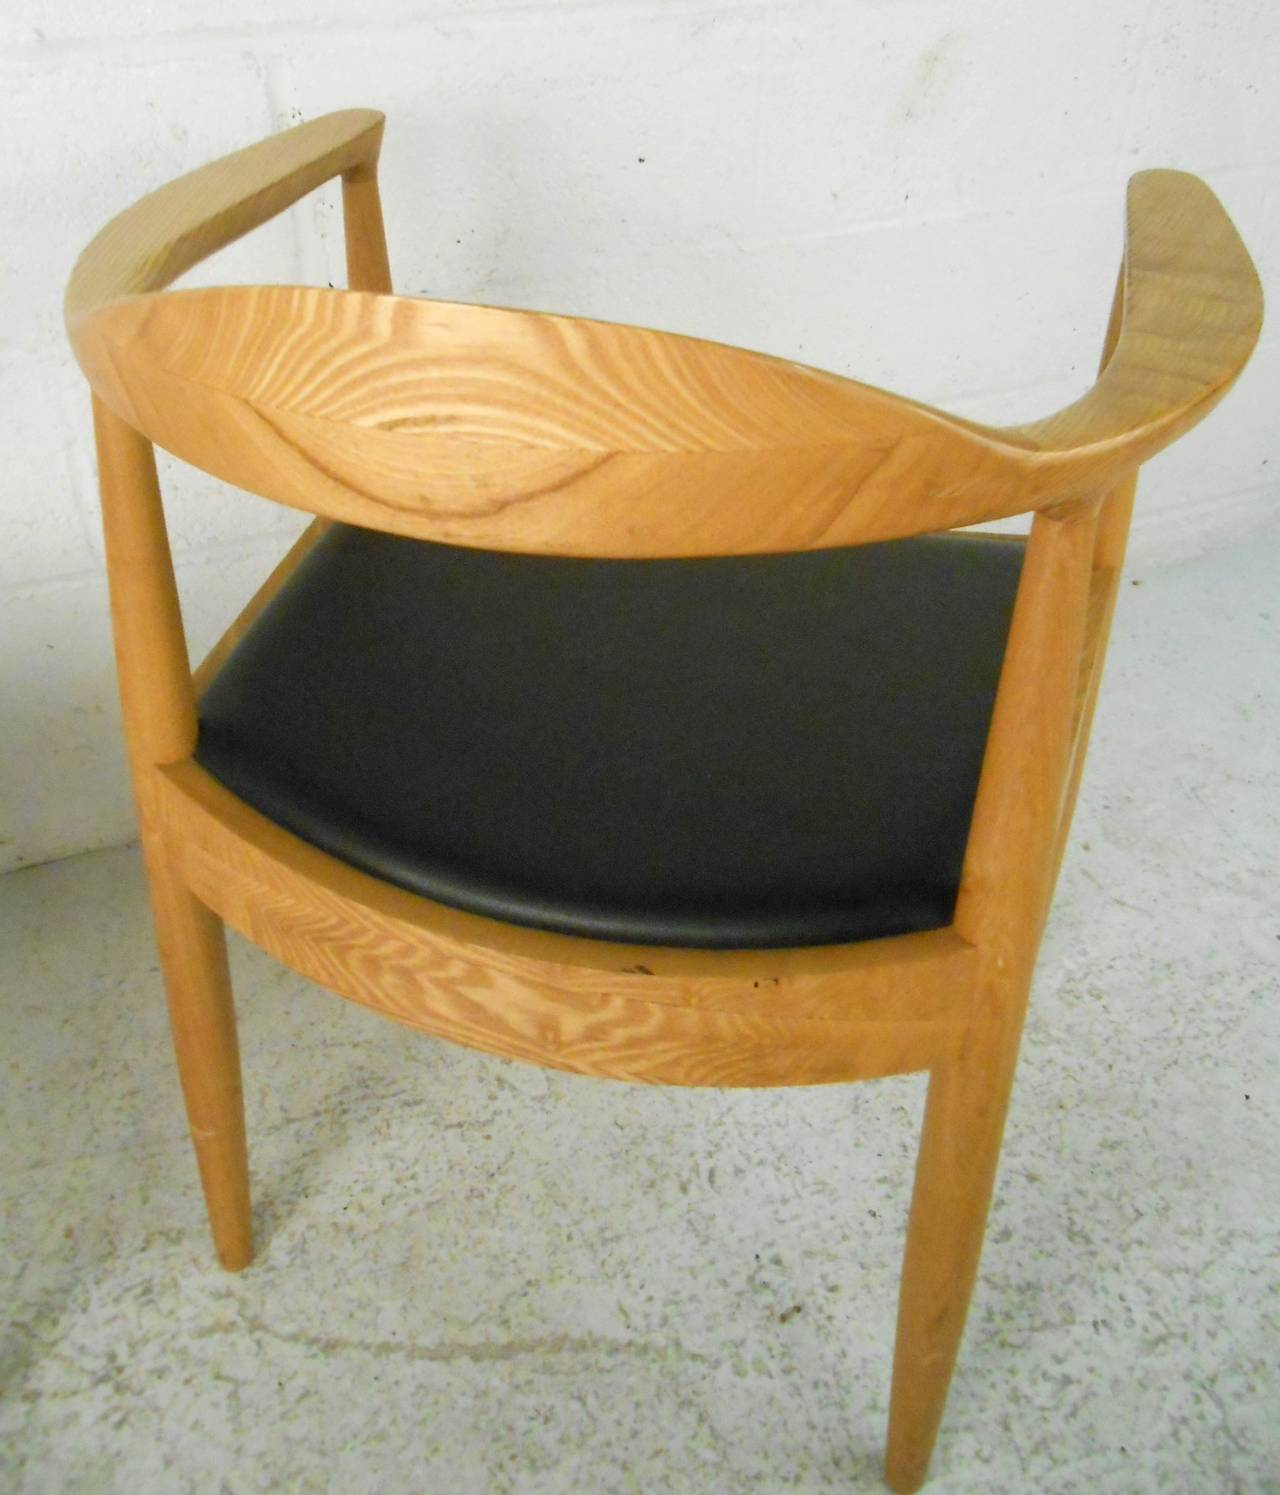 Pair of mid century modern hans wegner the chair style armchairs for sale at 1stdibs - Hans wegner style chair ...